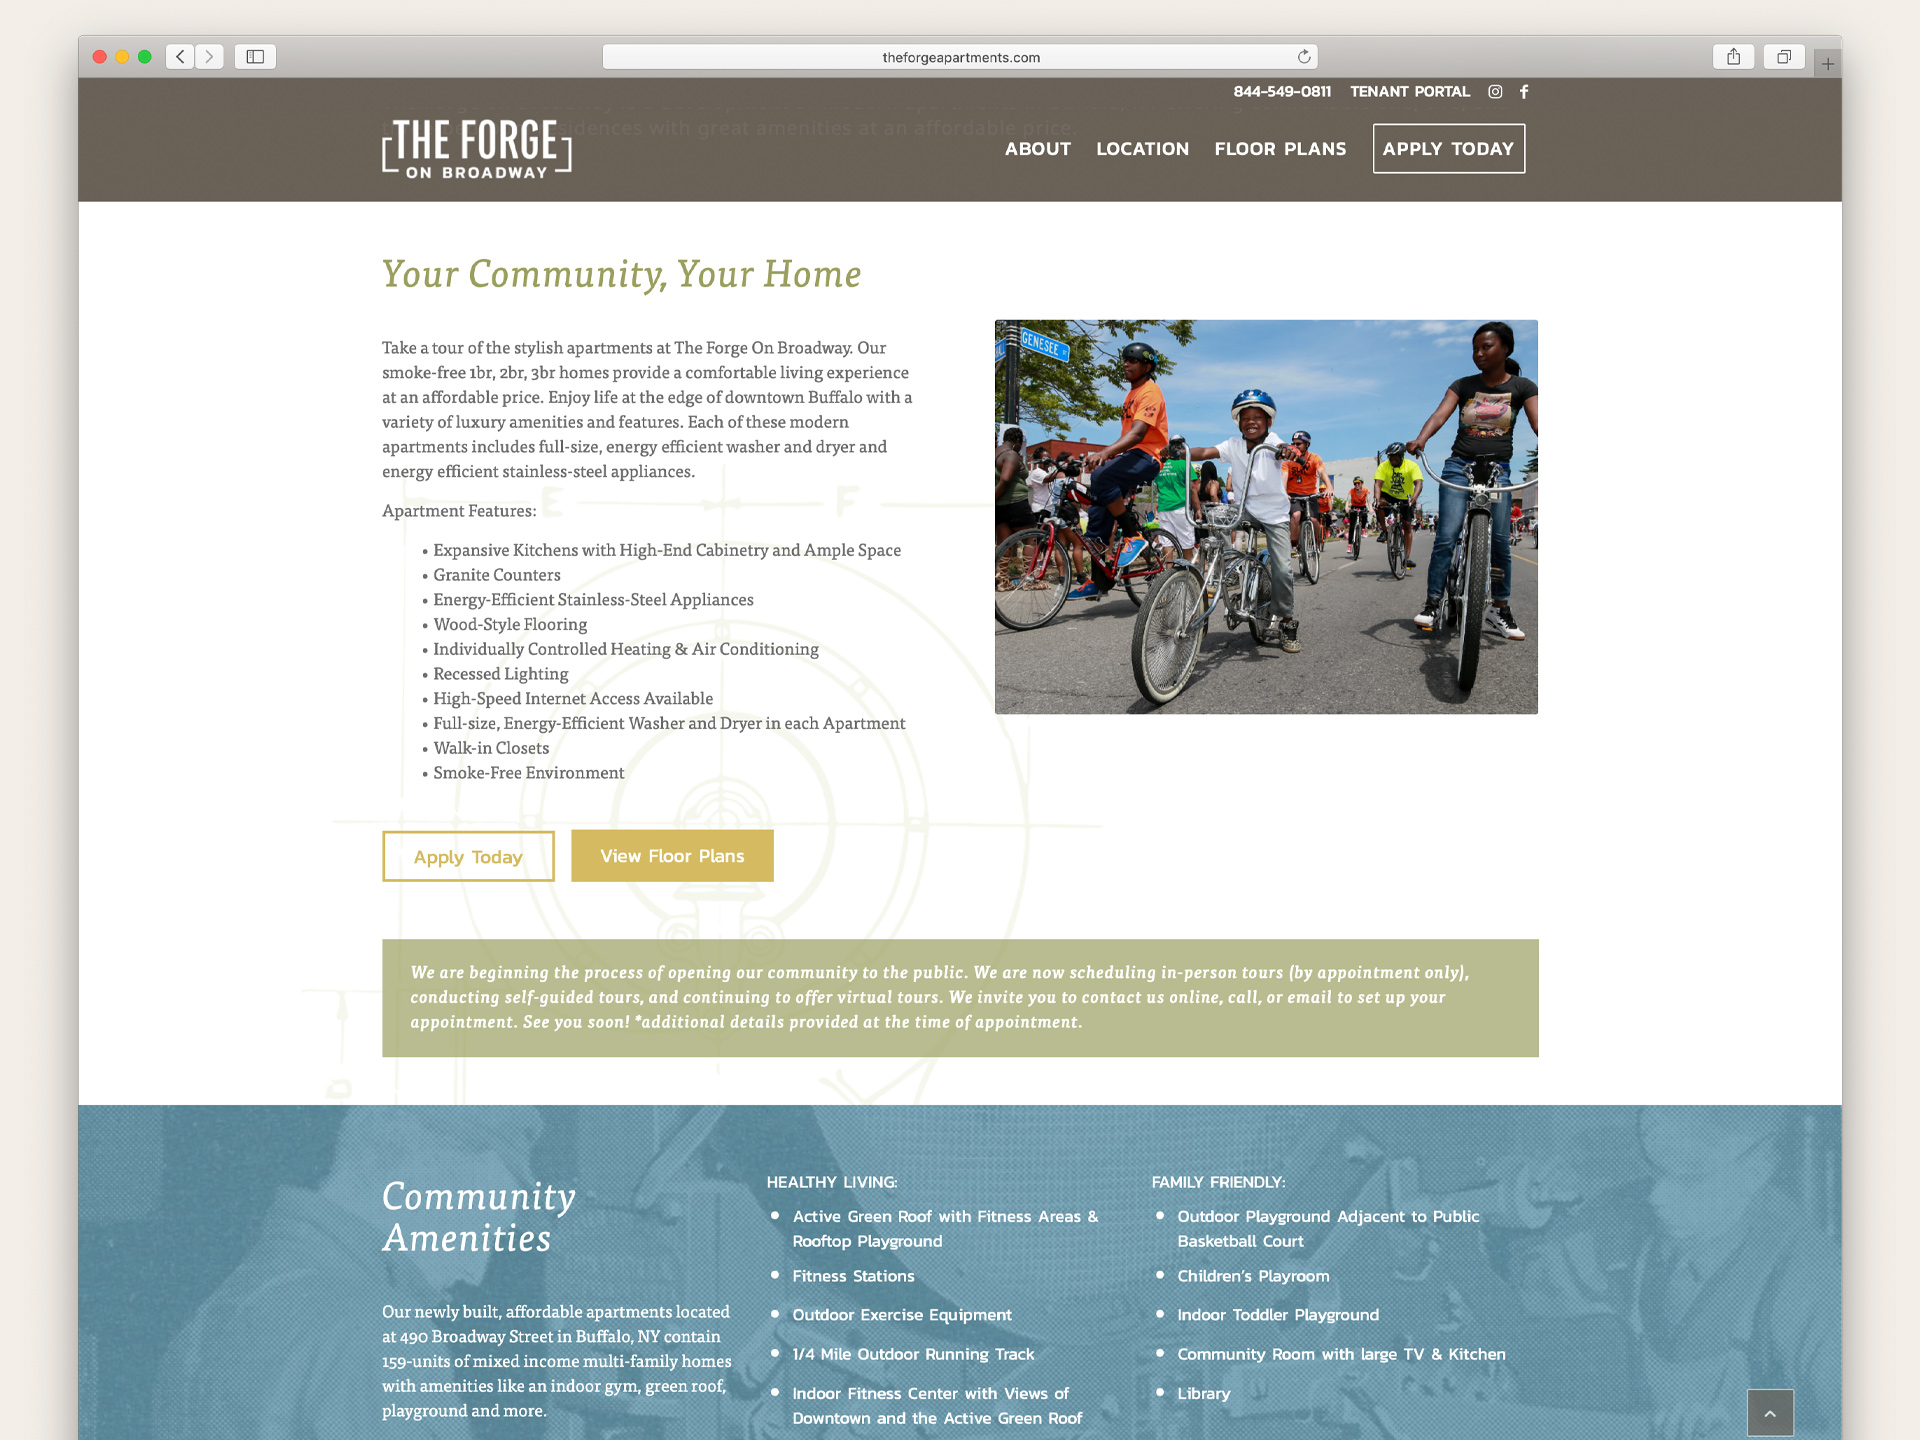 The Forge on Broadway website designed by OtherWisz Creative provides regional details about Buffalo and insight on life at the apartments